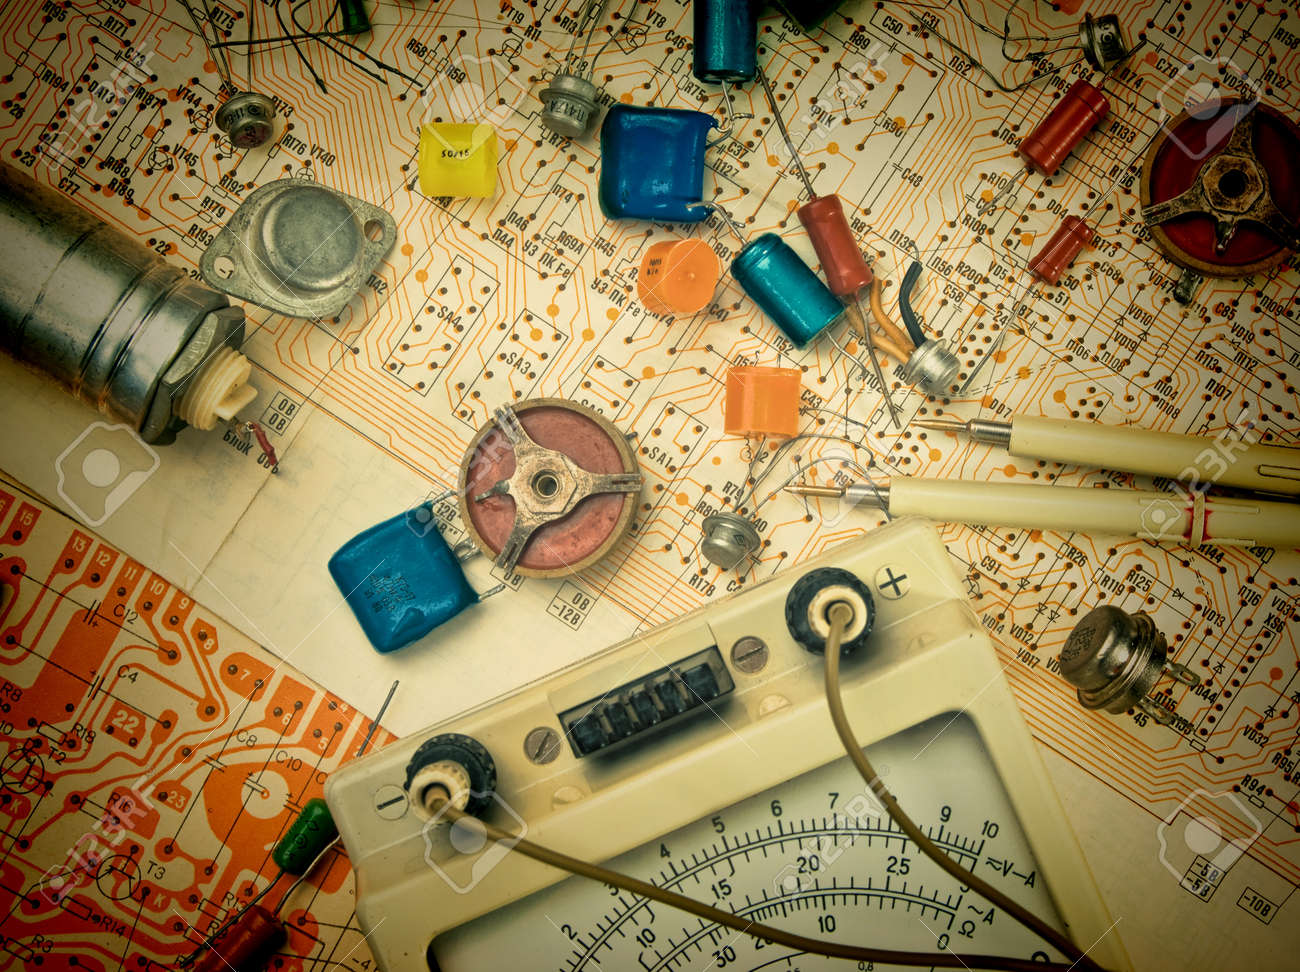 old electronic components lie on the wiring diagram stock photo old electronic components lie on the wiring diagram stock photo 18148061